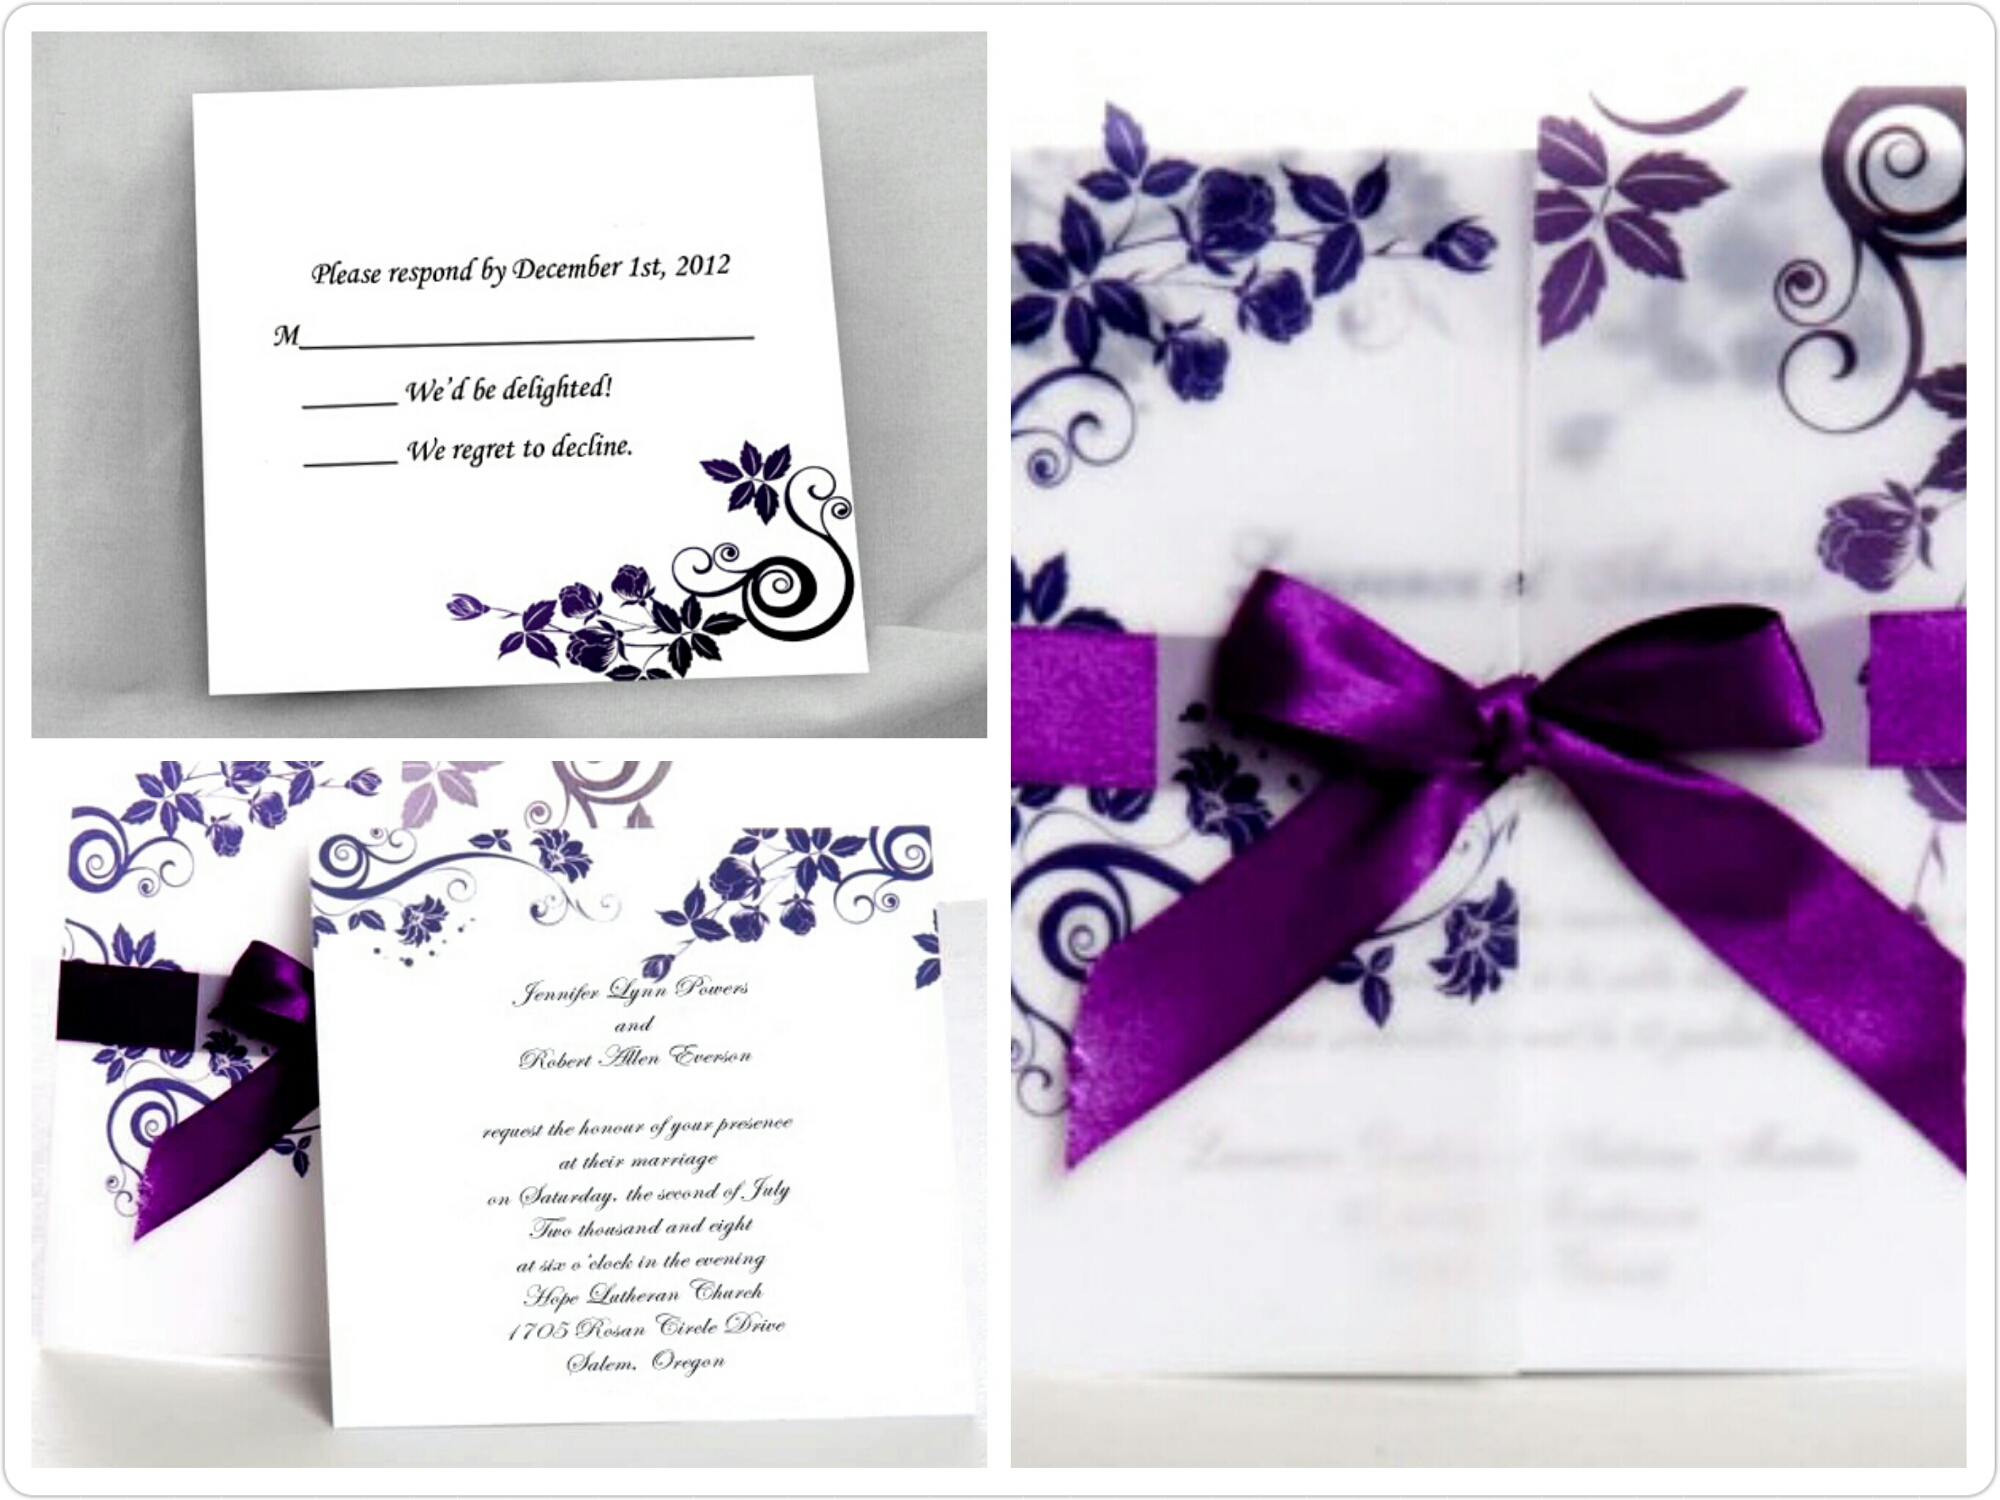 perfectly purple wedding invites for fall lavender wedding invitations Elegant Wedding Invites image